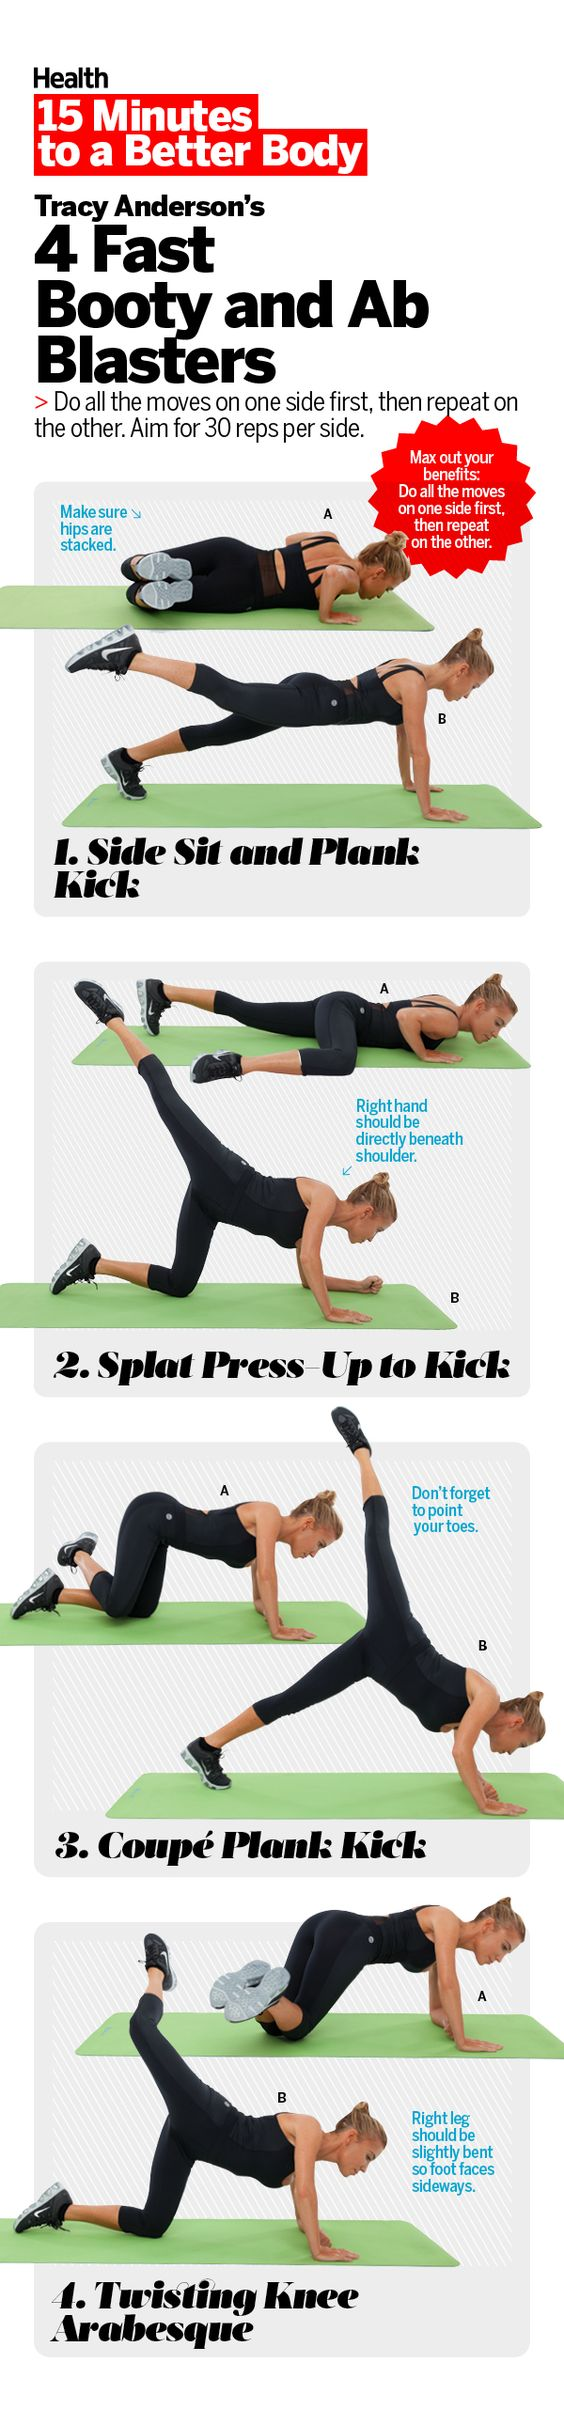 Protruding stomachs and saggy tushes will be a thing of the past, thanks to this power workout.   Health.com